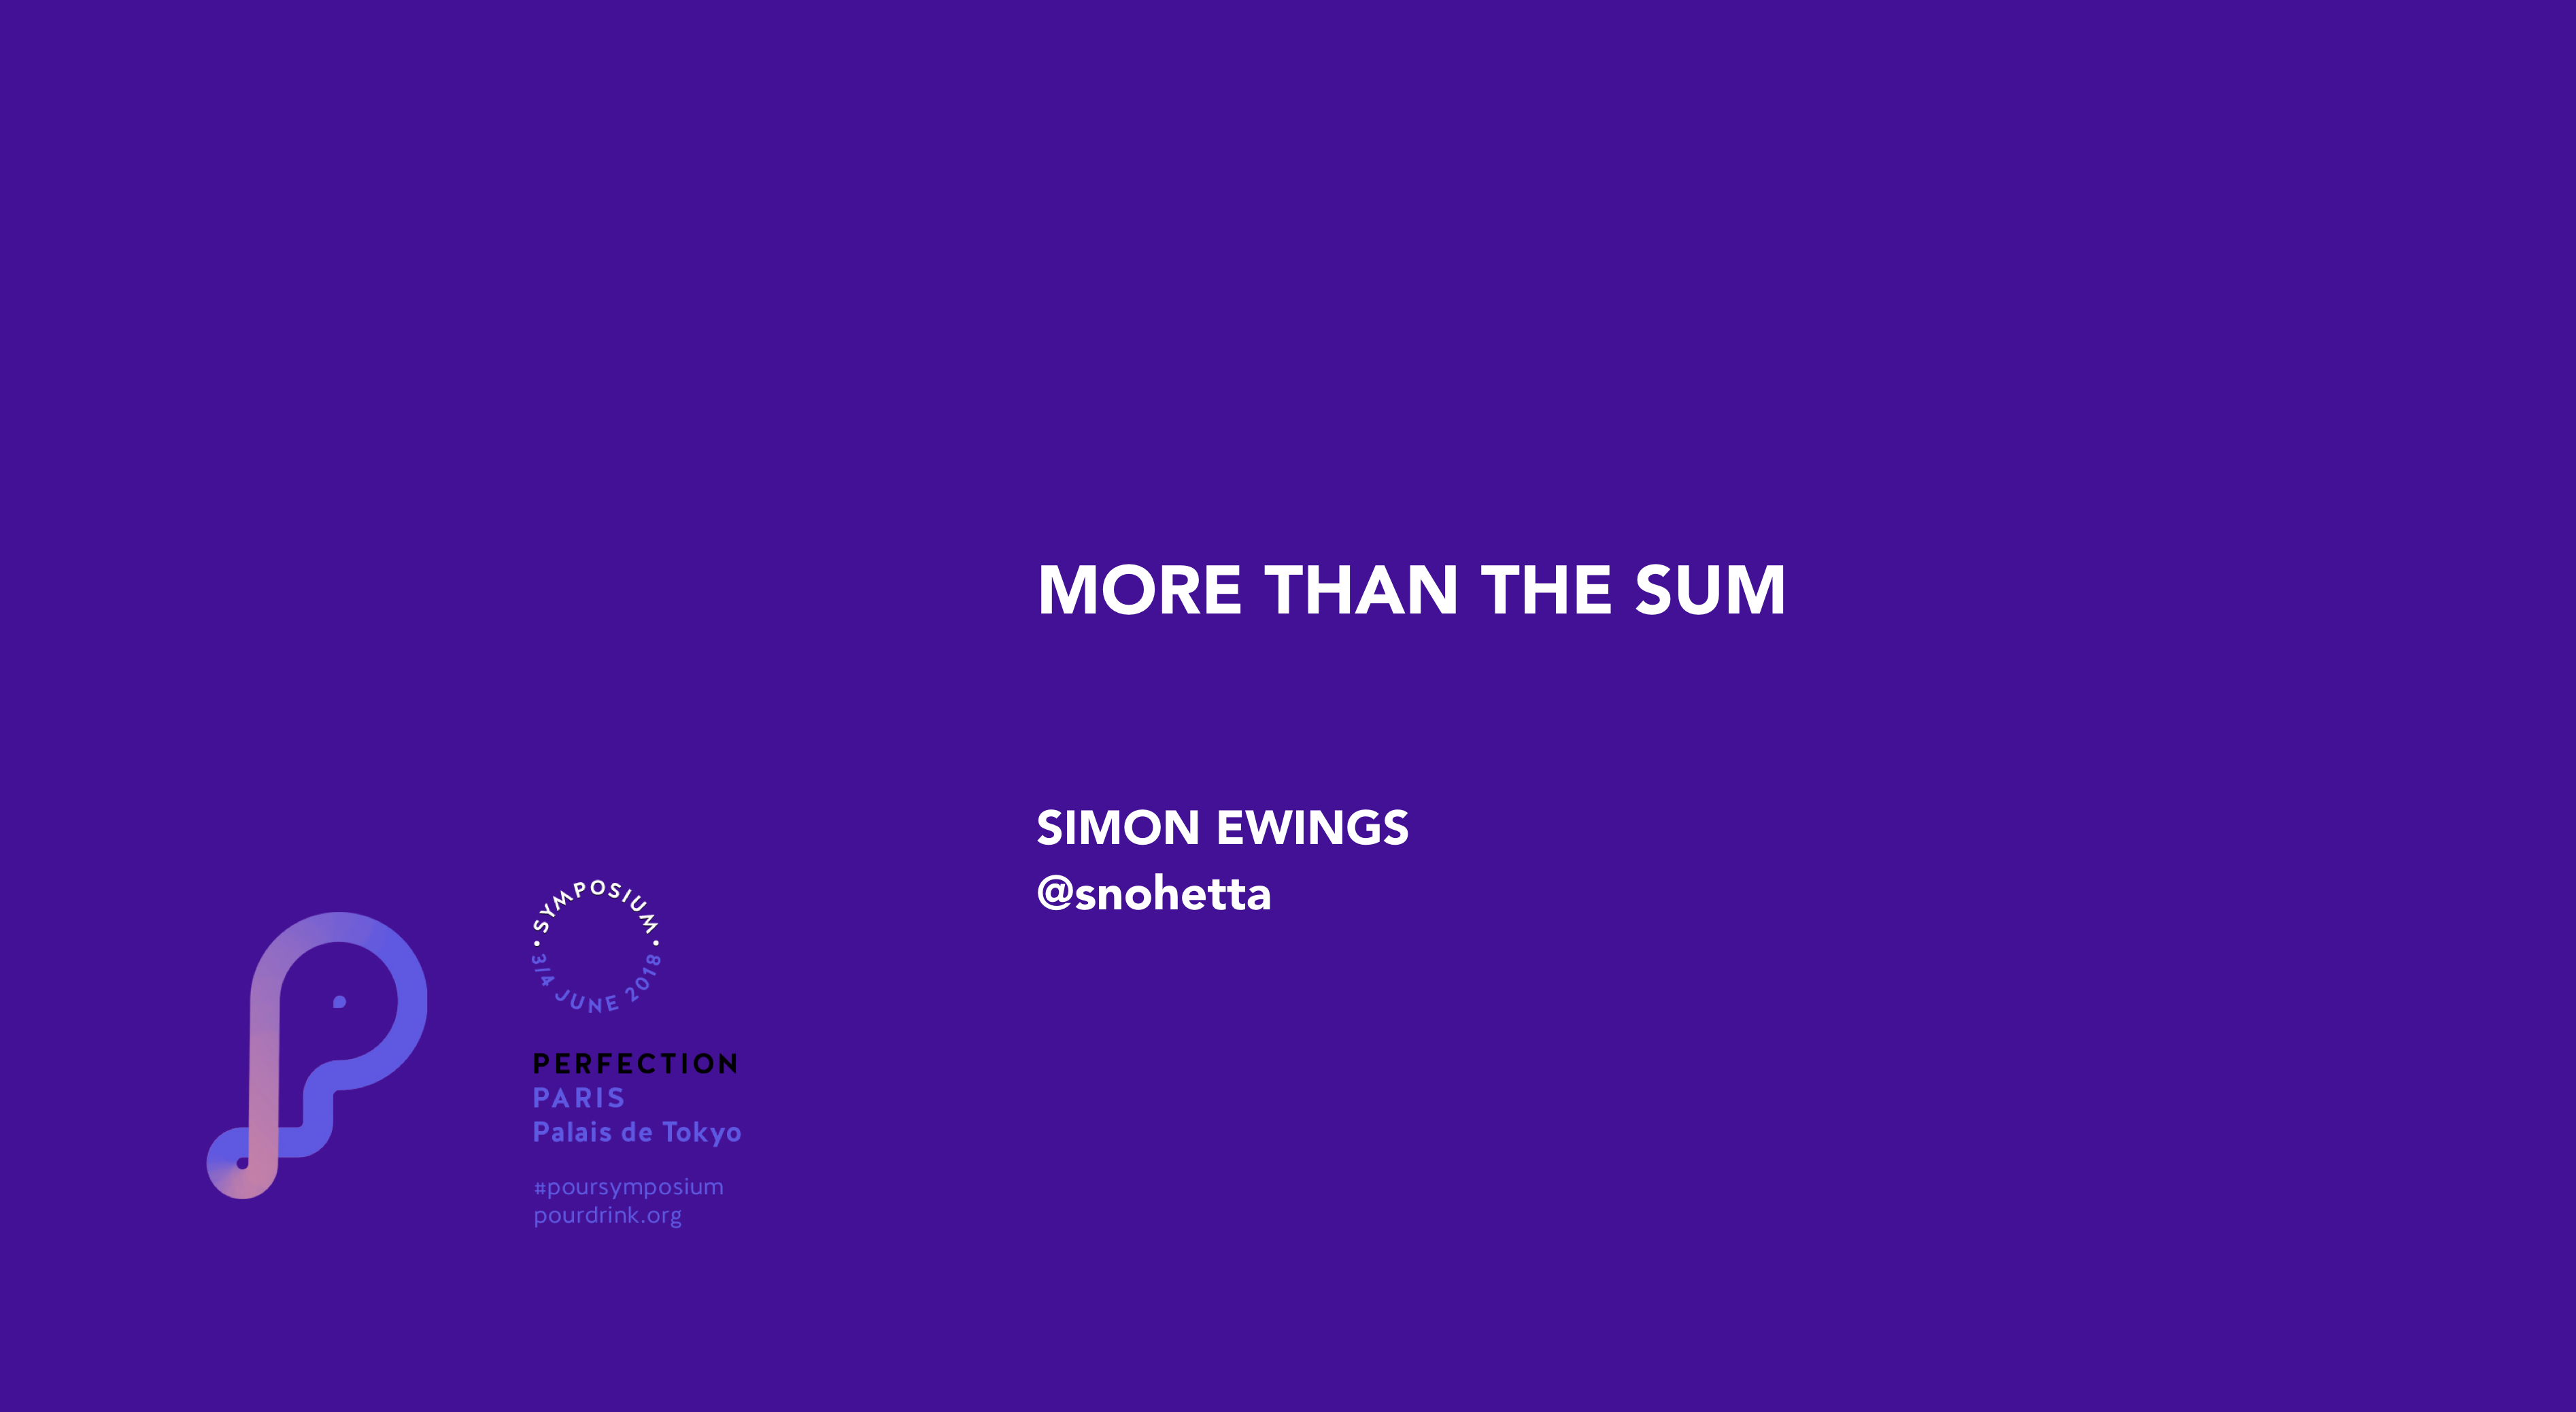 SIMON EWINGS | MORE THAN THE SUM